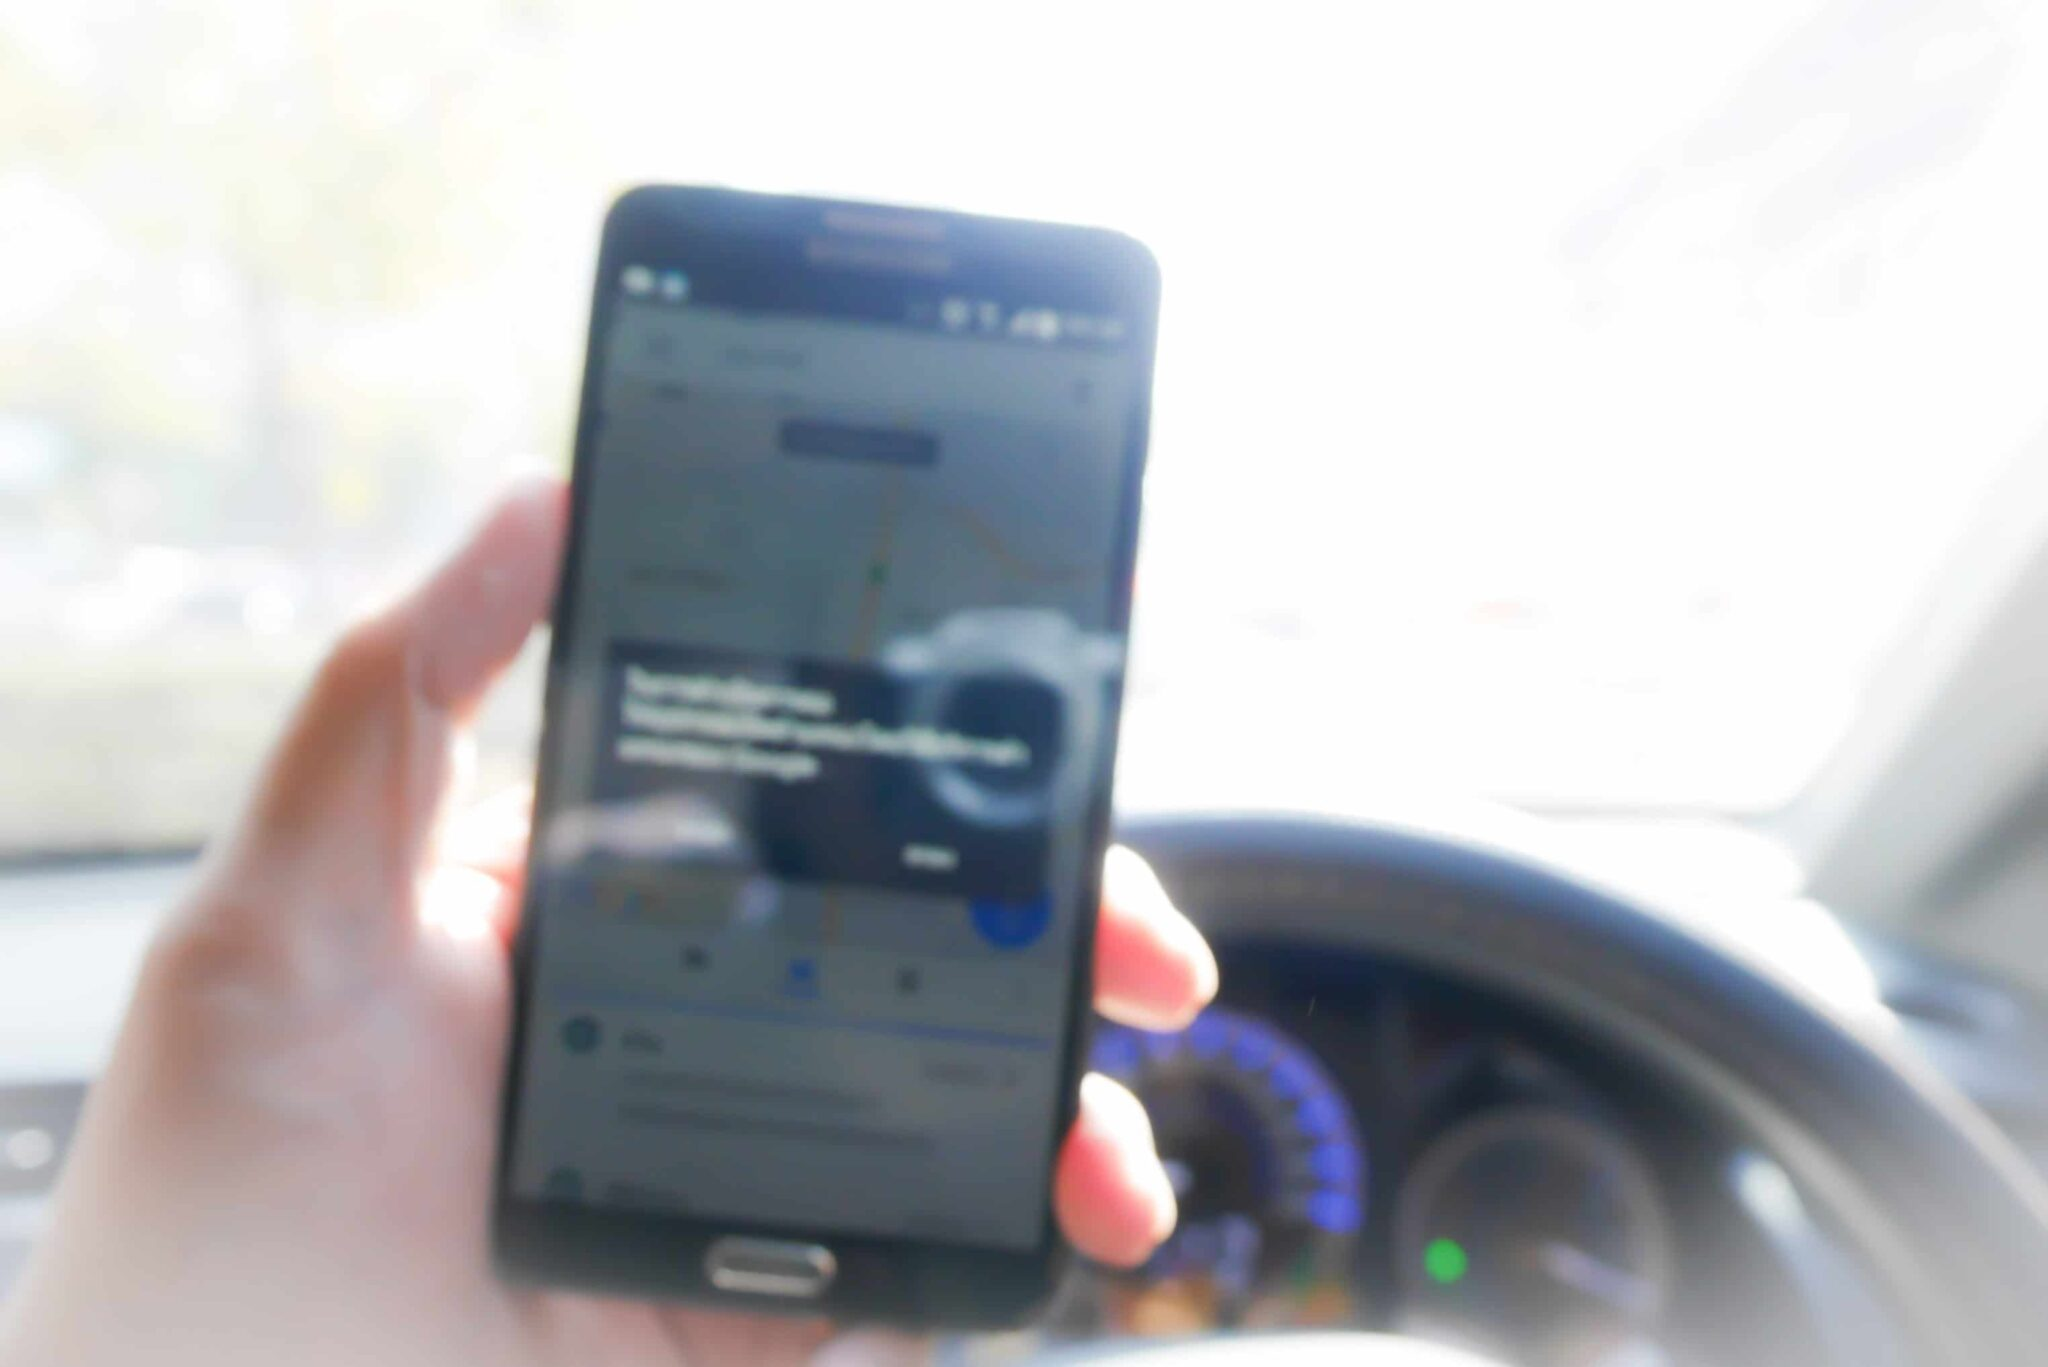 Driver's hand holding phone showing navigation software near the dashboard